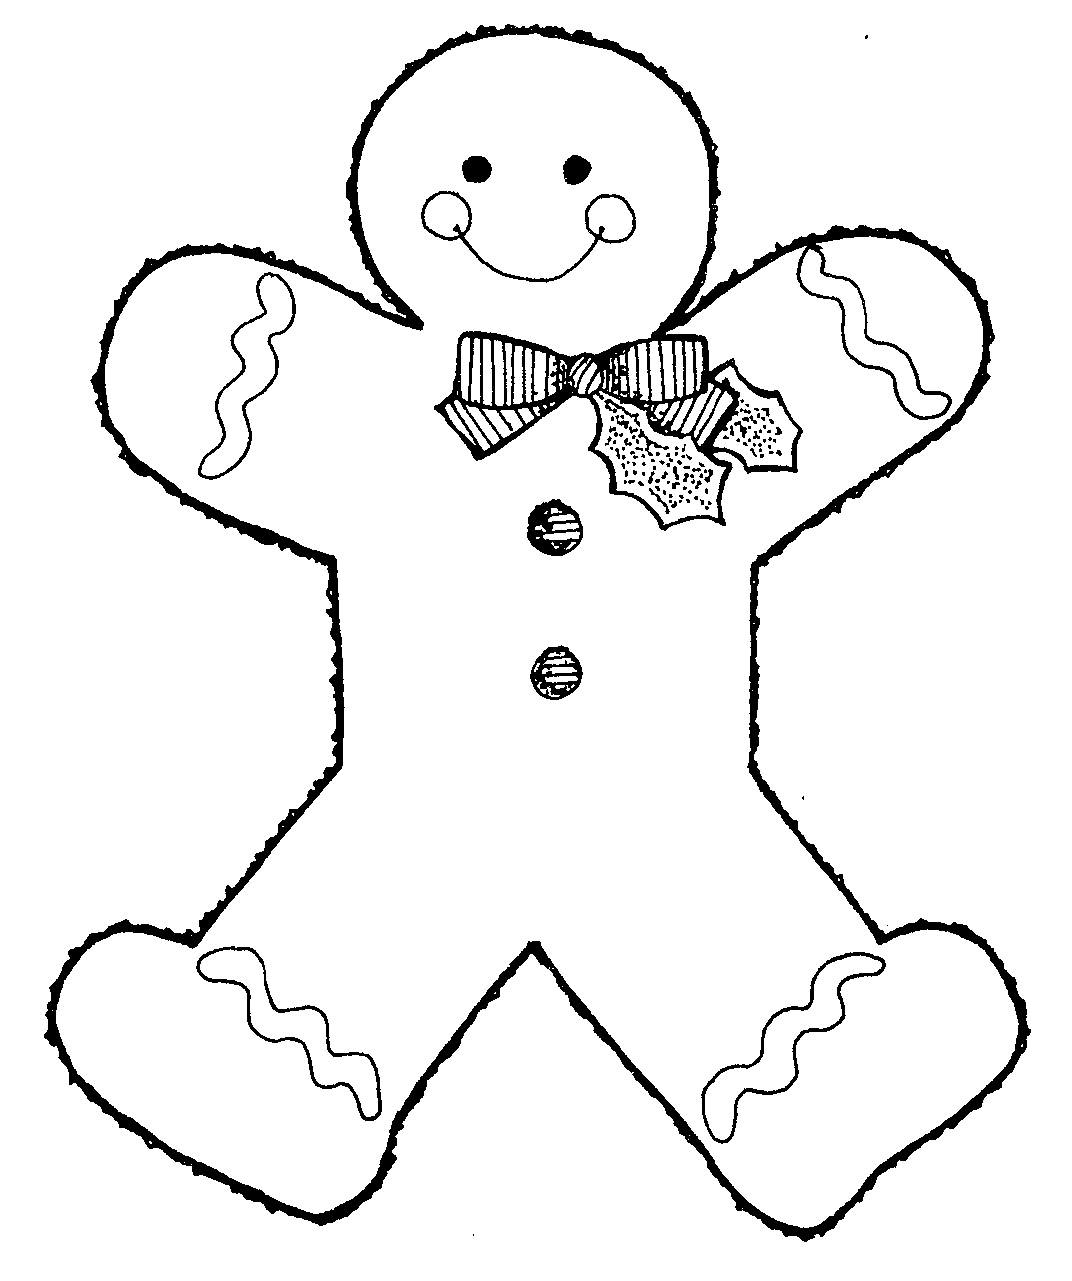 Ginger clipart sketch Collection of outline gingerbread of